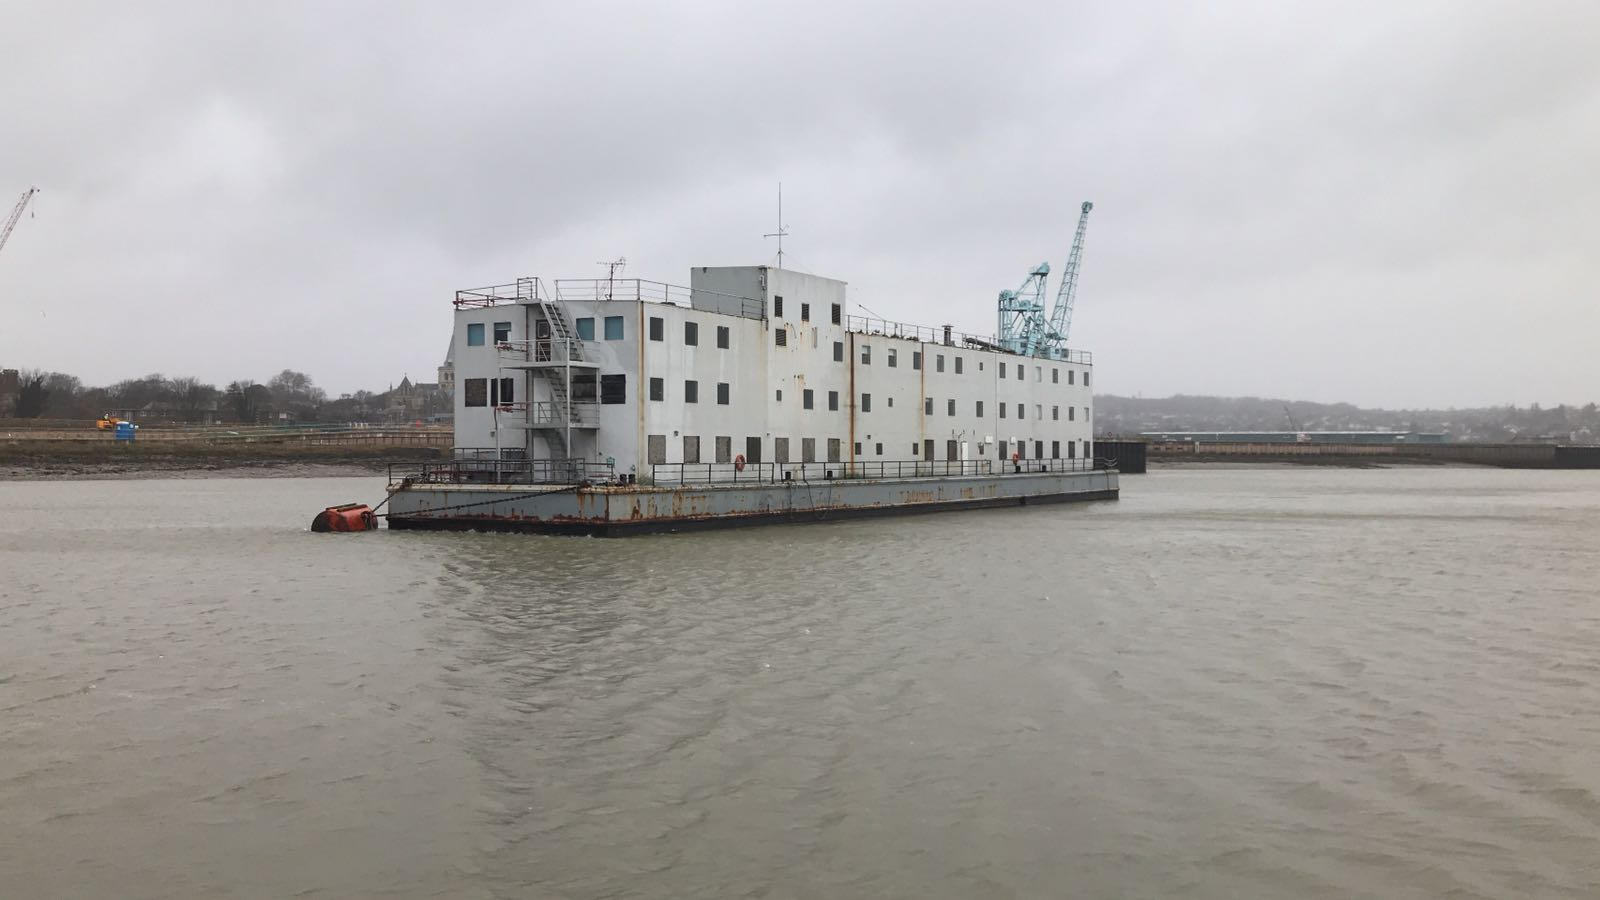 Accommodation barge 200 pax